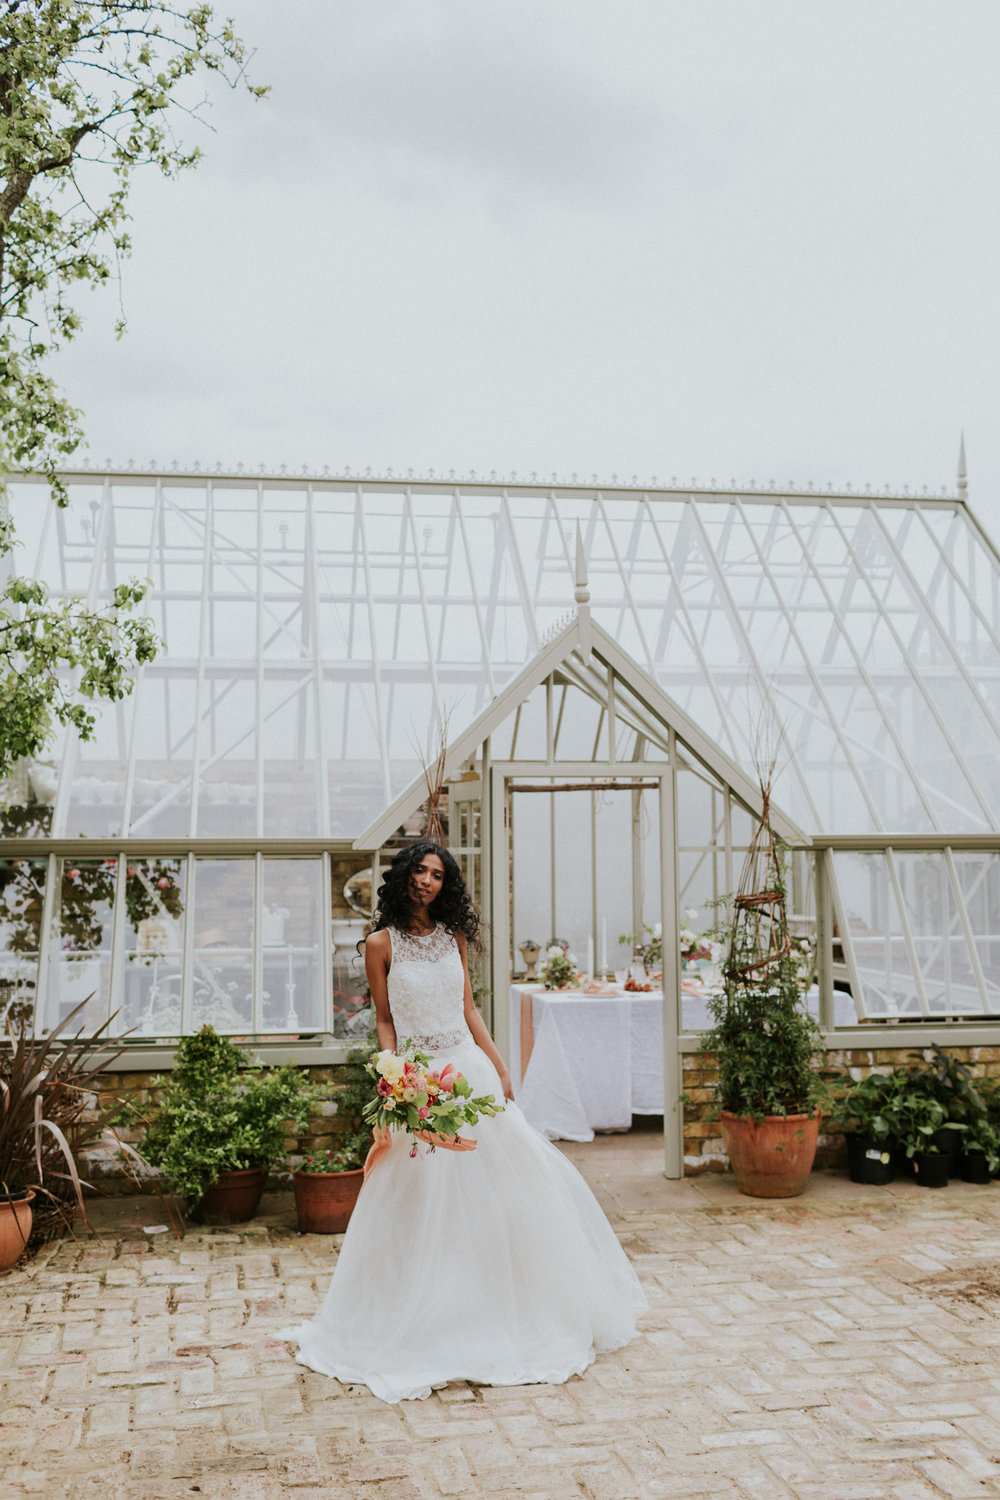 The Timeless Stylist - UK Wedding Design and Styling - English Garden Wedding